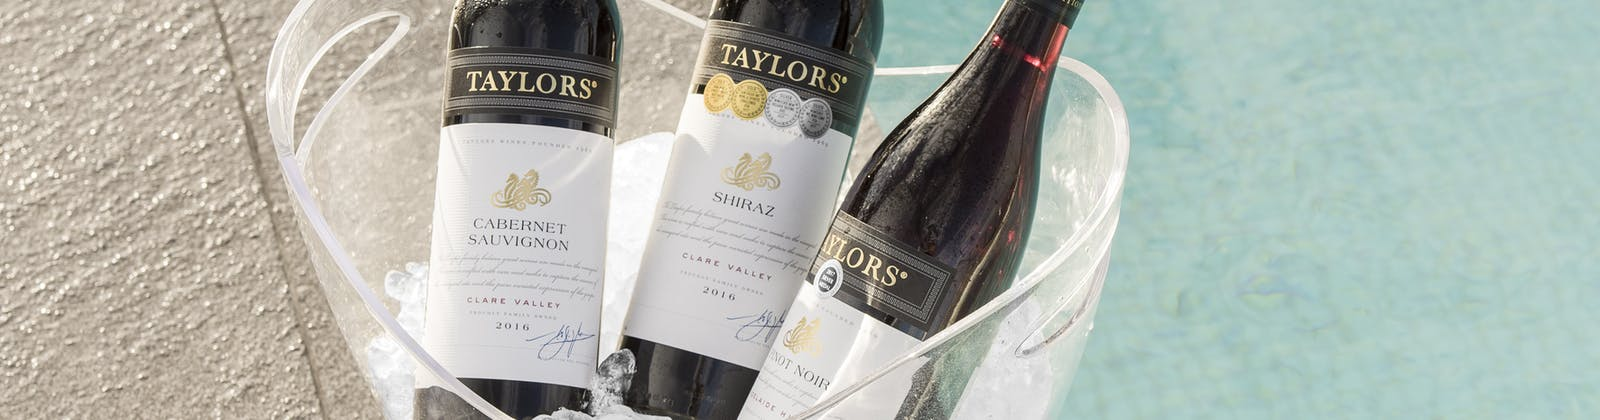 Taylors Wines collectioin